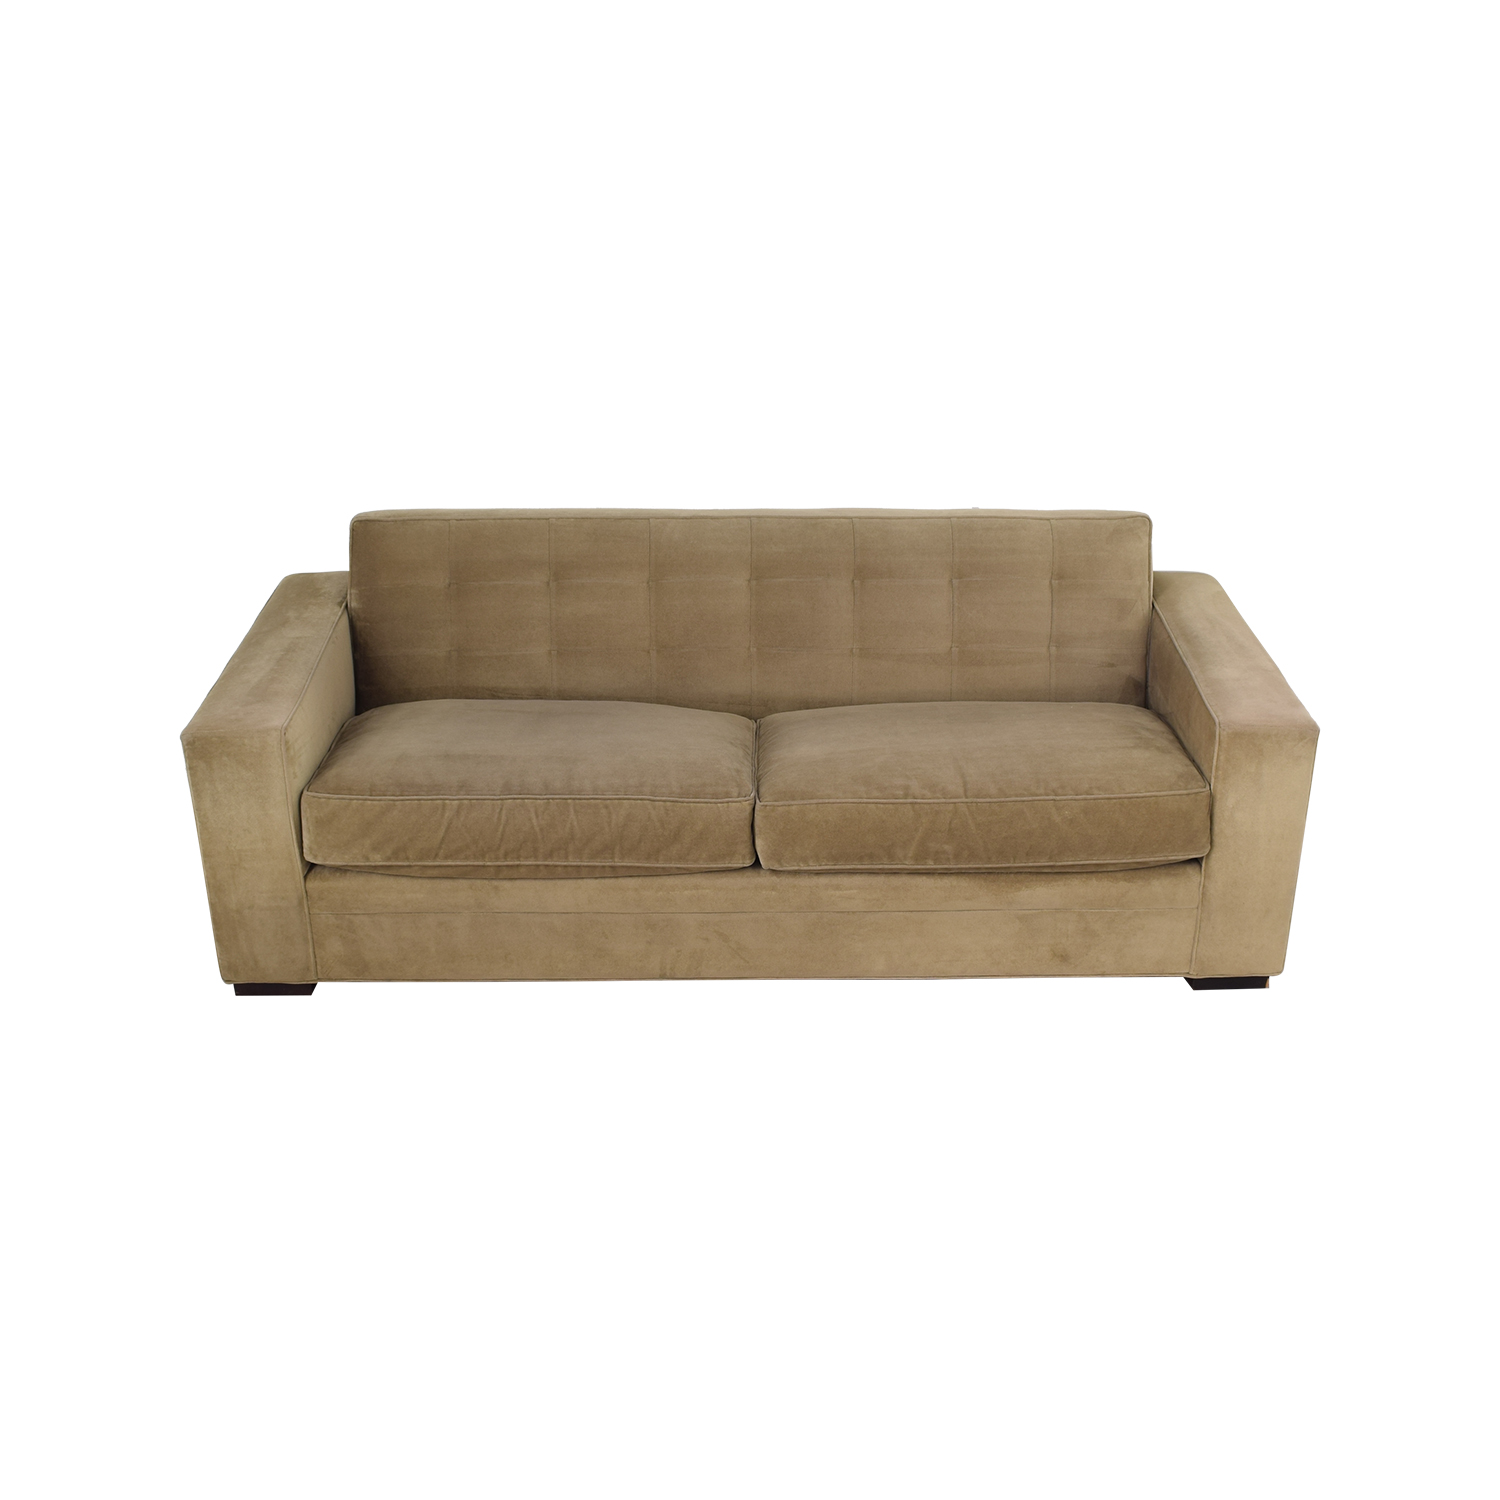 Mitchell Gold + Bob Williams Mitchell Gold + Bob Williams Two Cushion Sofa ct